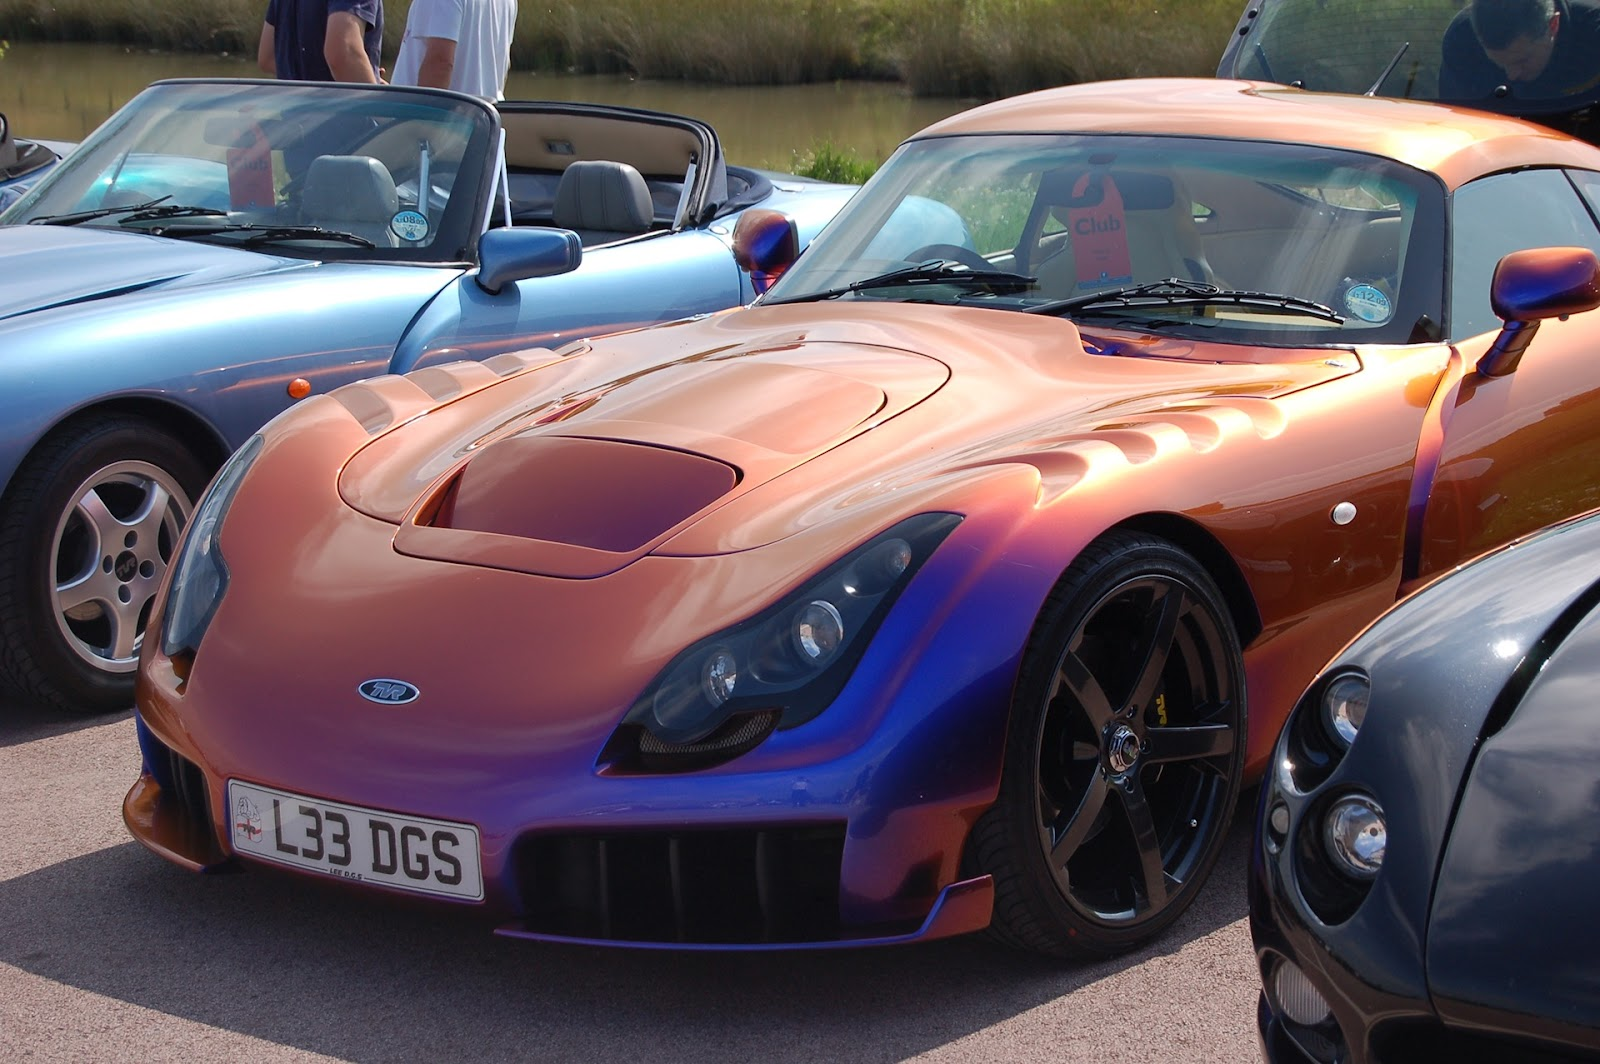 Wallpapers Of Beautiful Cars Tvr Sagaris